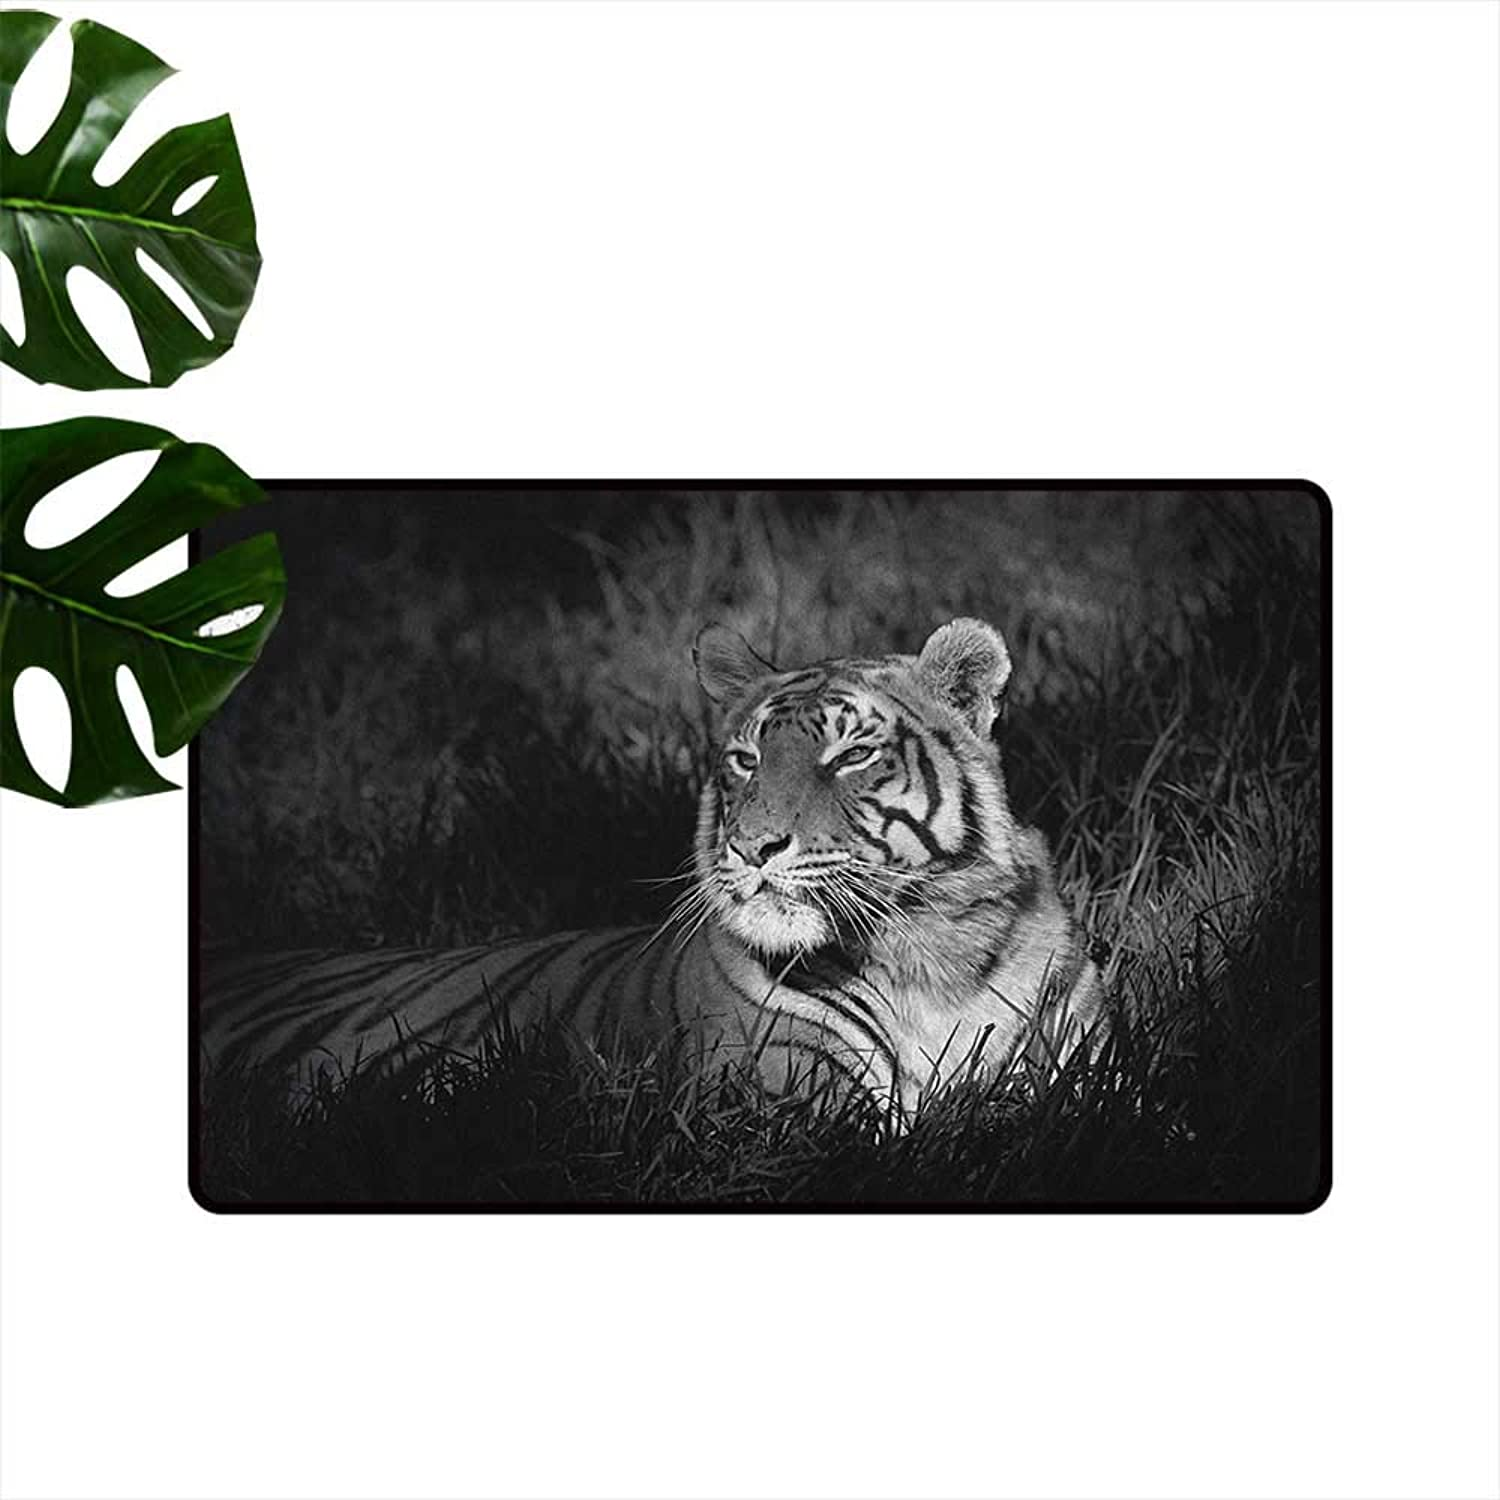 Black and White Entrance Door mat Bengal Tiger Lying in The Grass Africa Savannah Monochrome Image Print Hard and wear Resistant W35 x L59 Black White